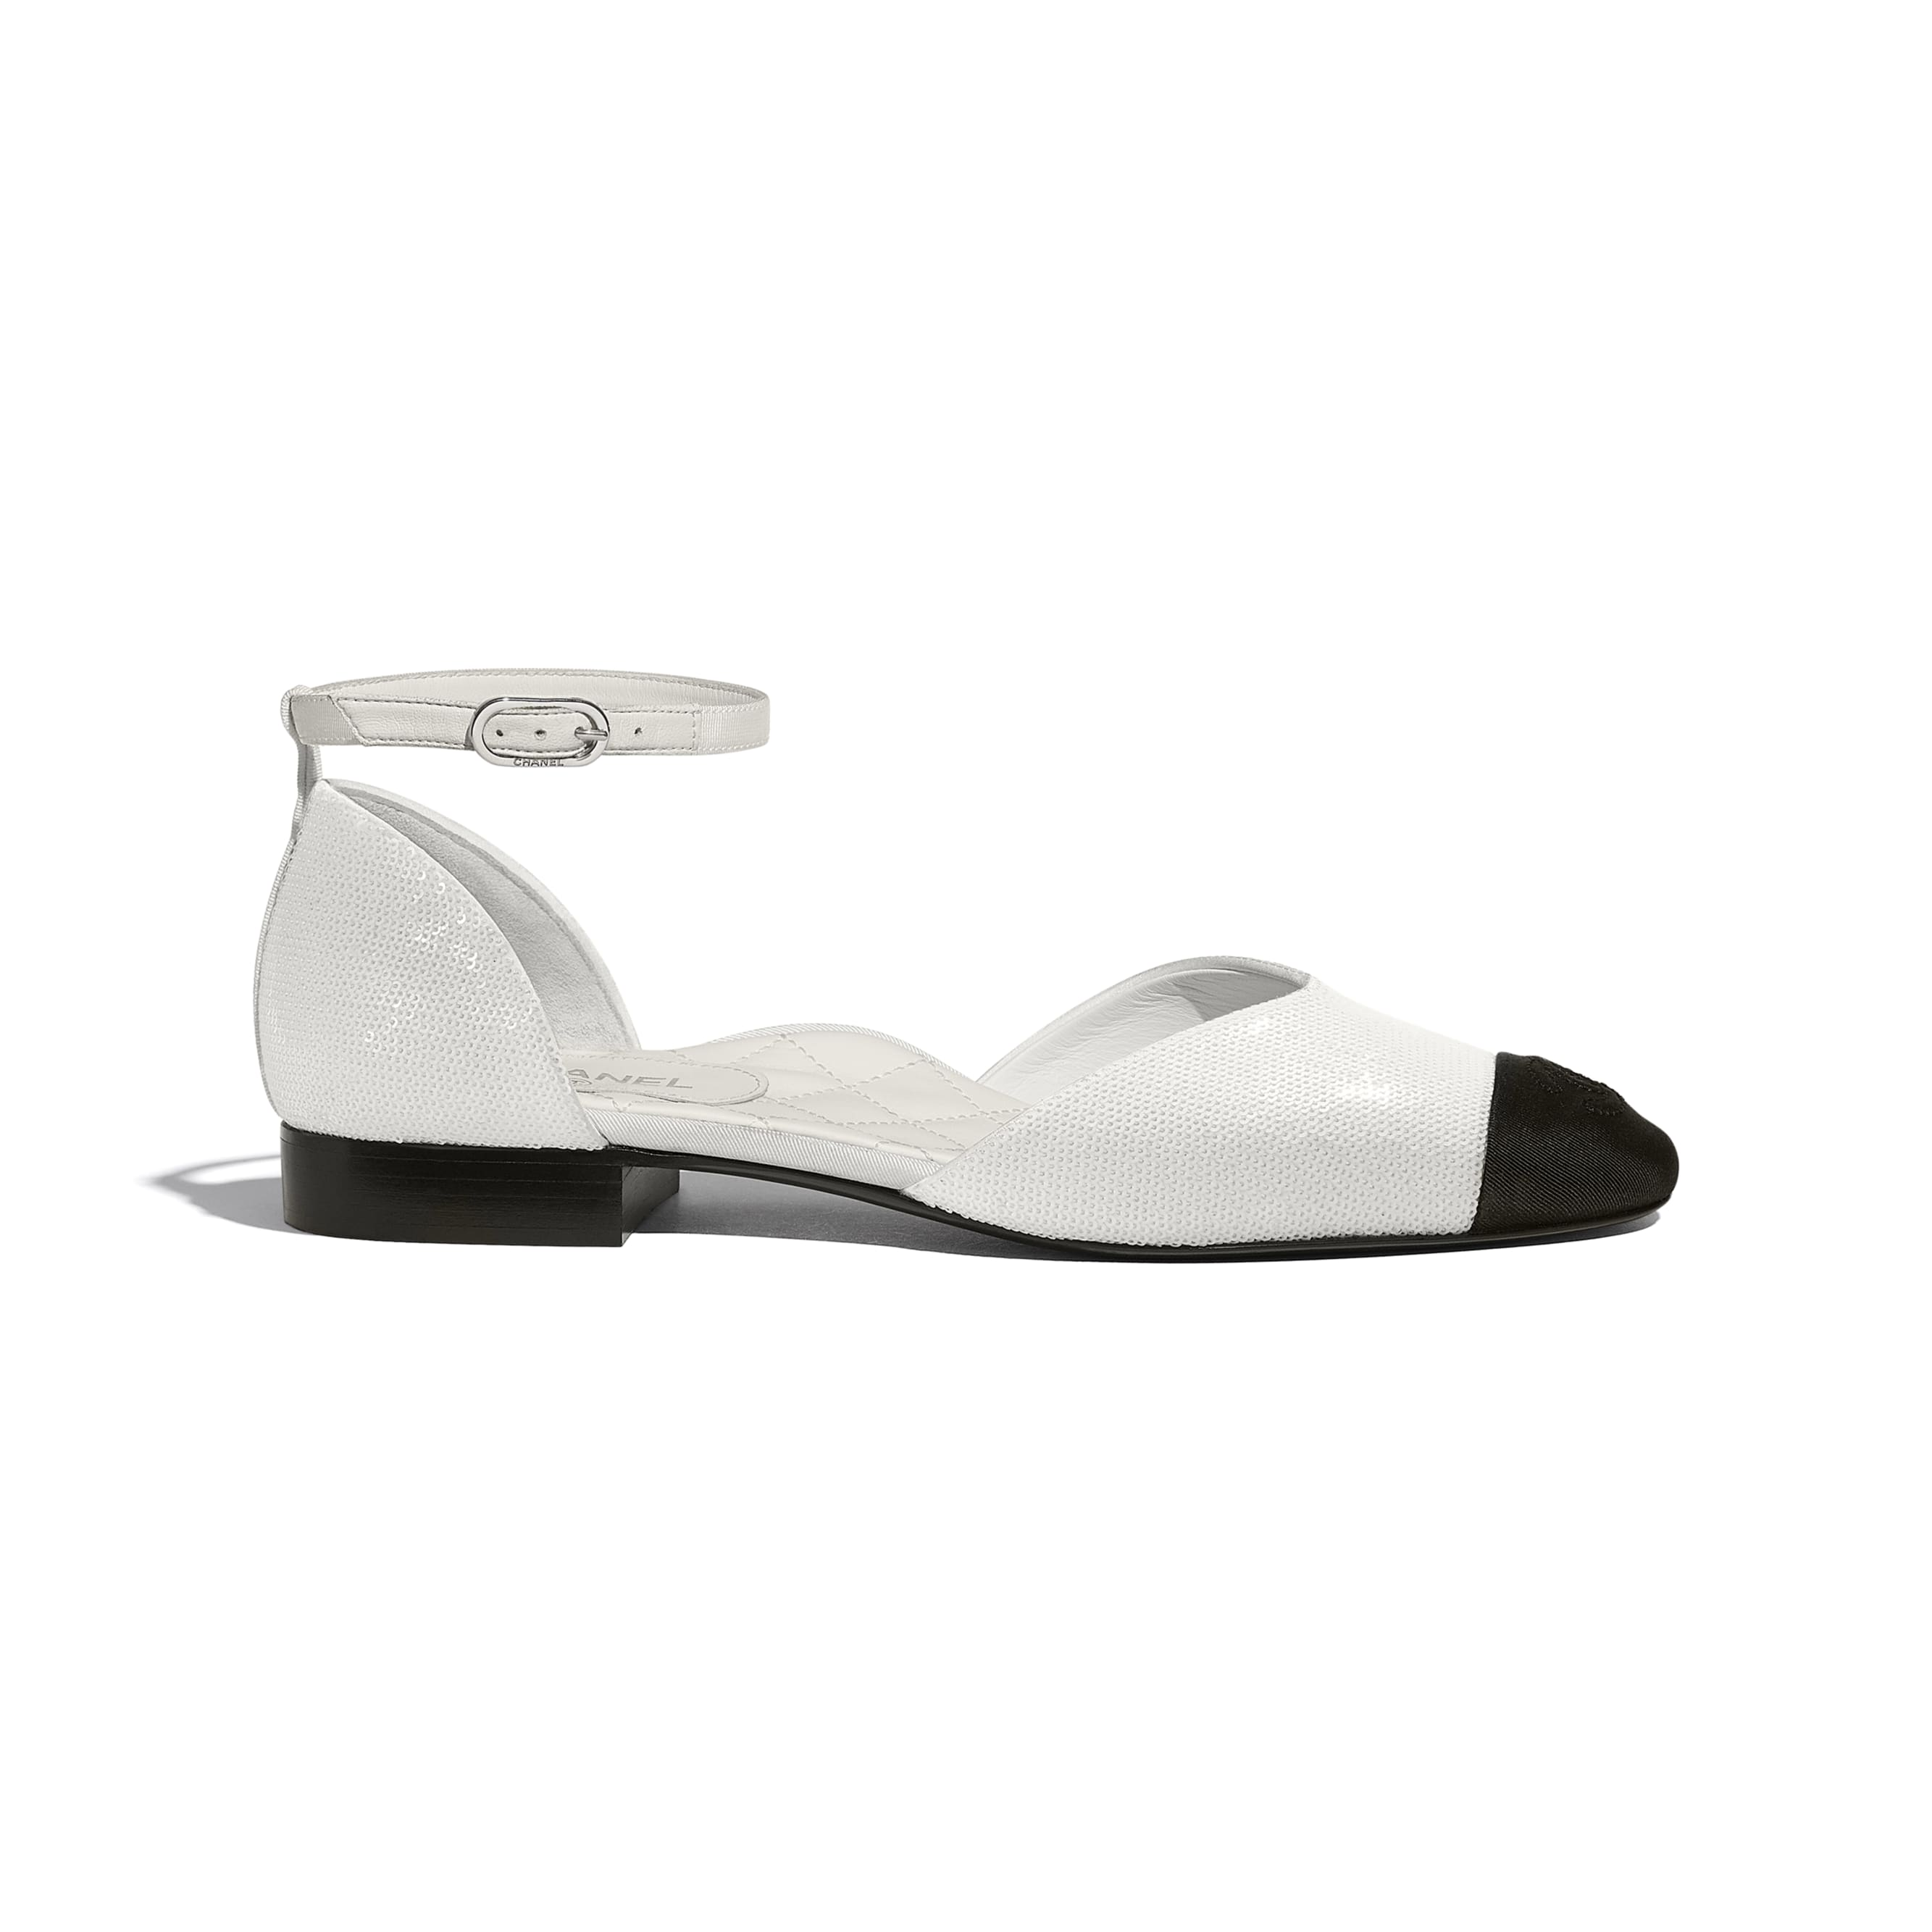 Mary Janes  - Ivory & Black - Sequins & Grosgrain - CHANEL - Default view - see standard sized version